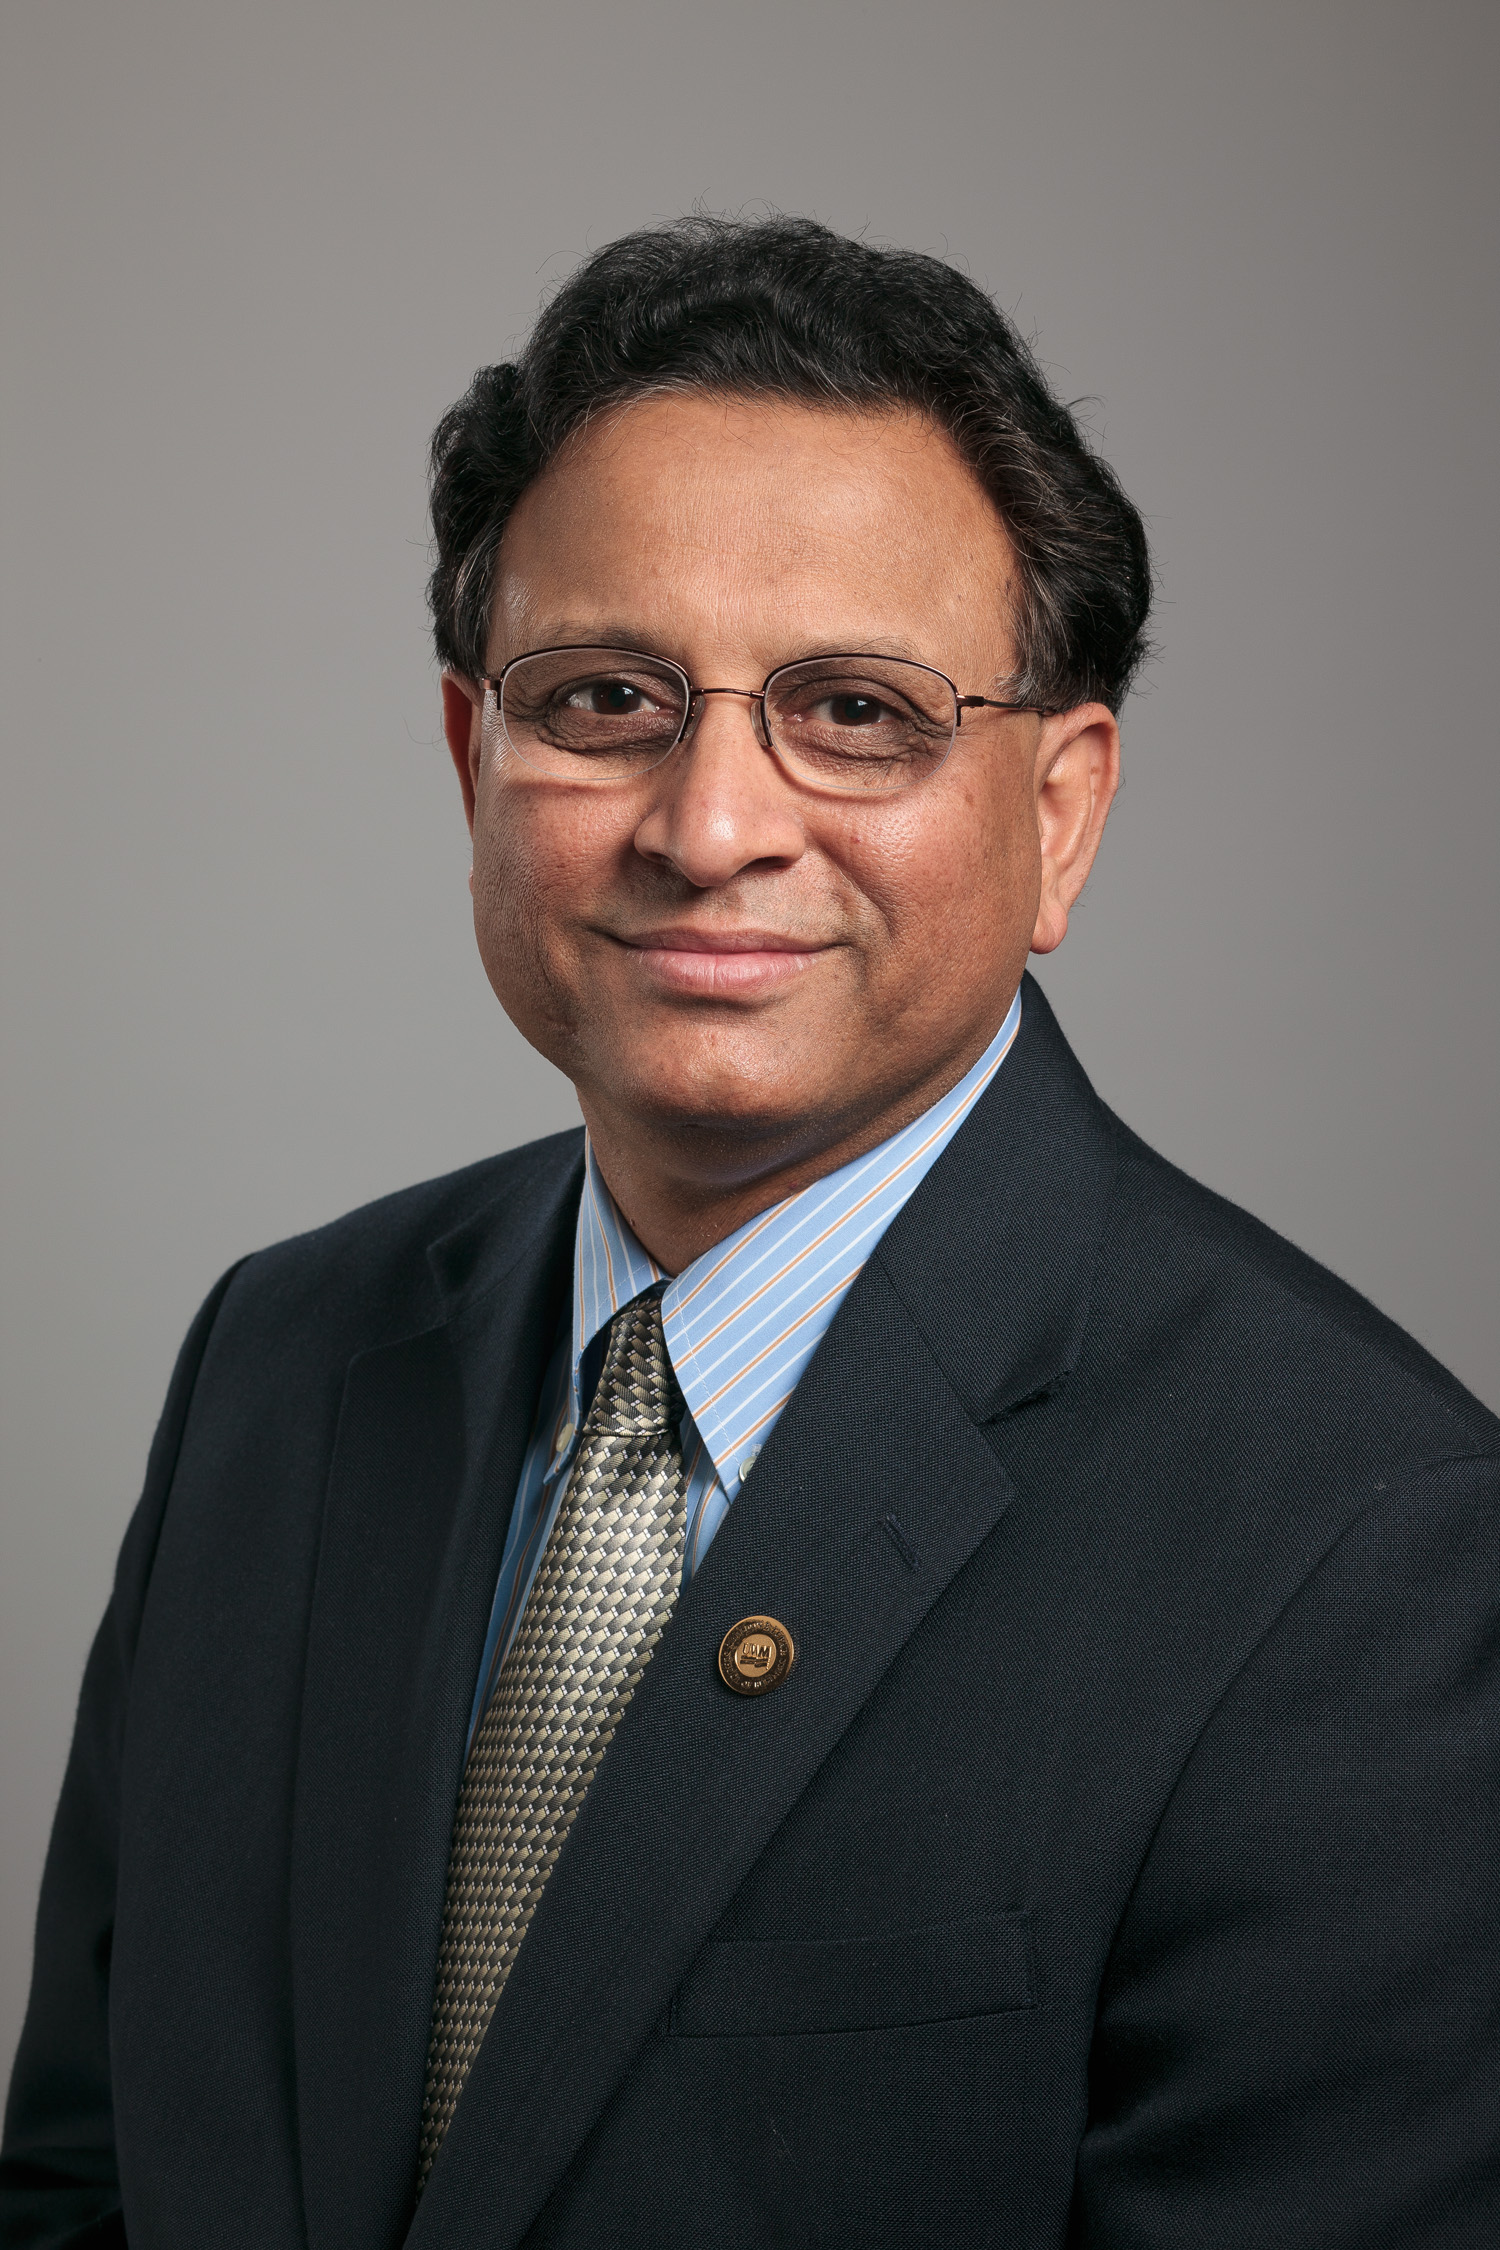 Studio portrait of Atish Sinha of the Lubar School of Business.